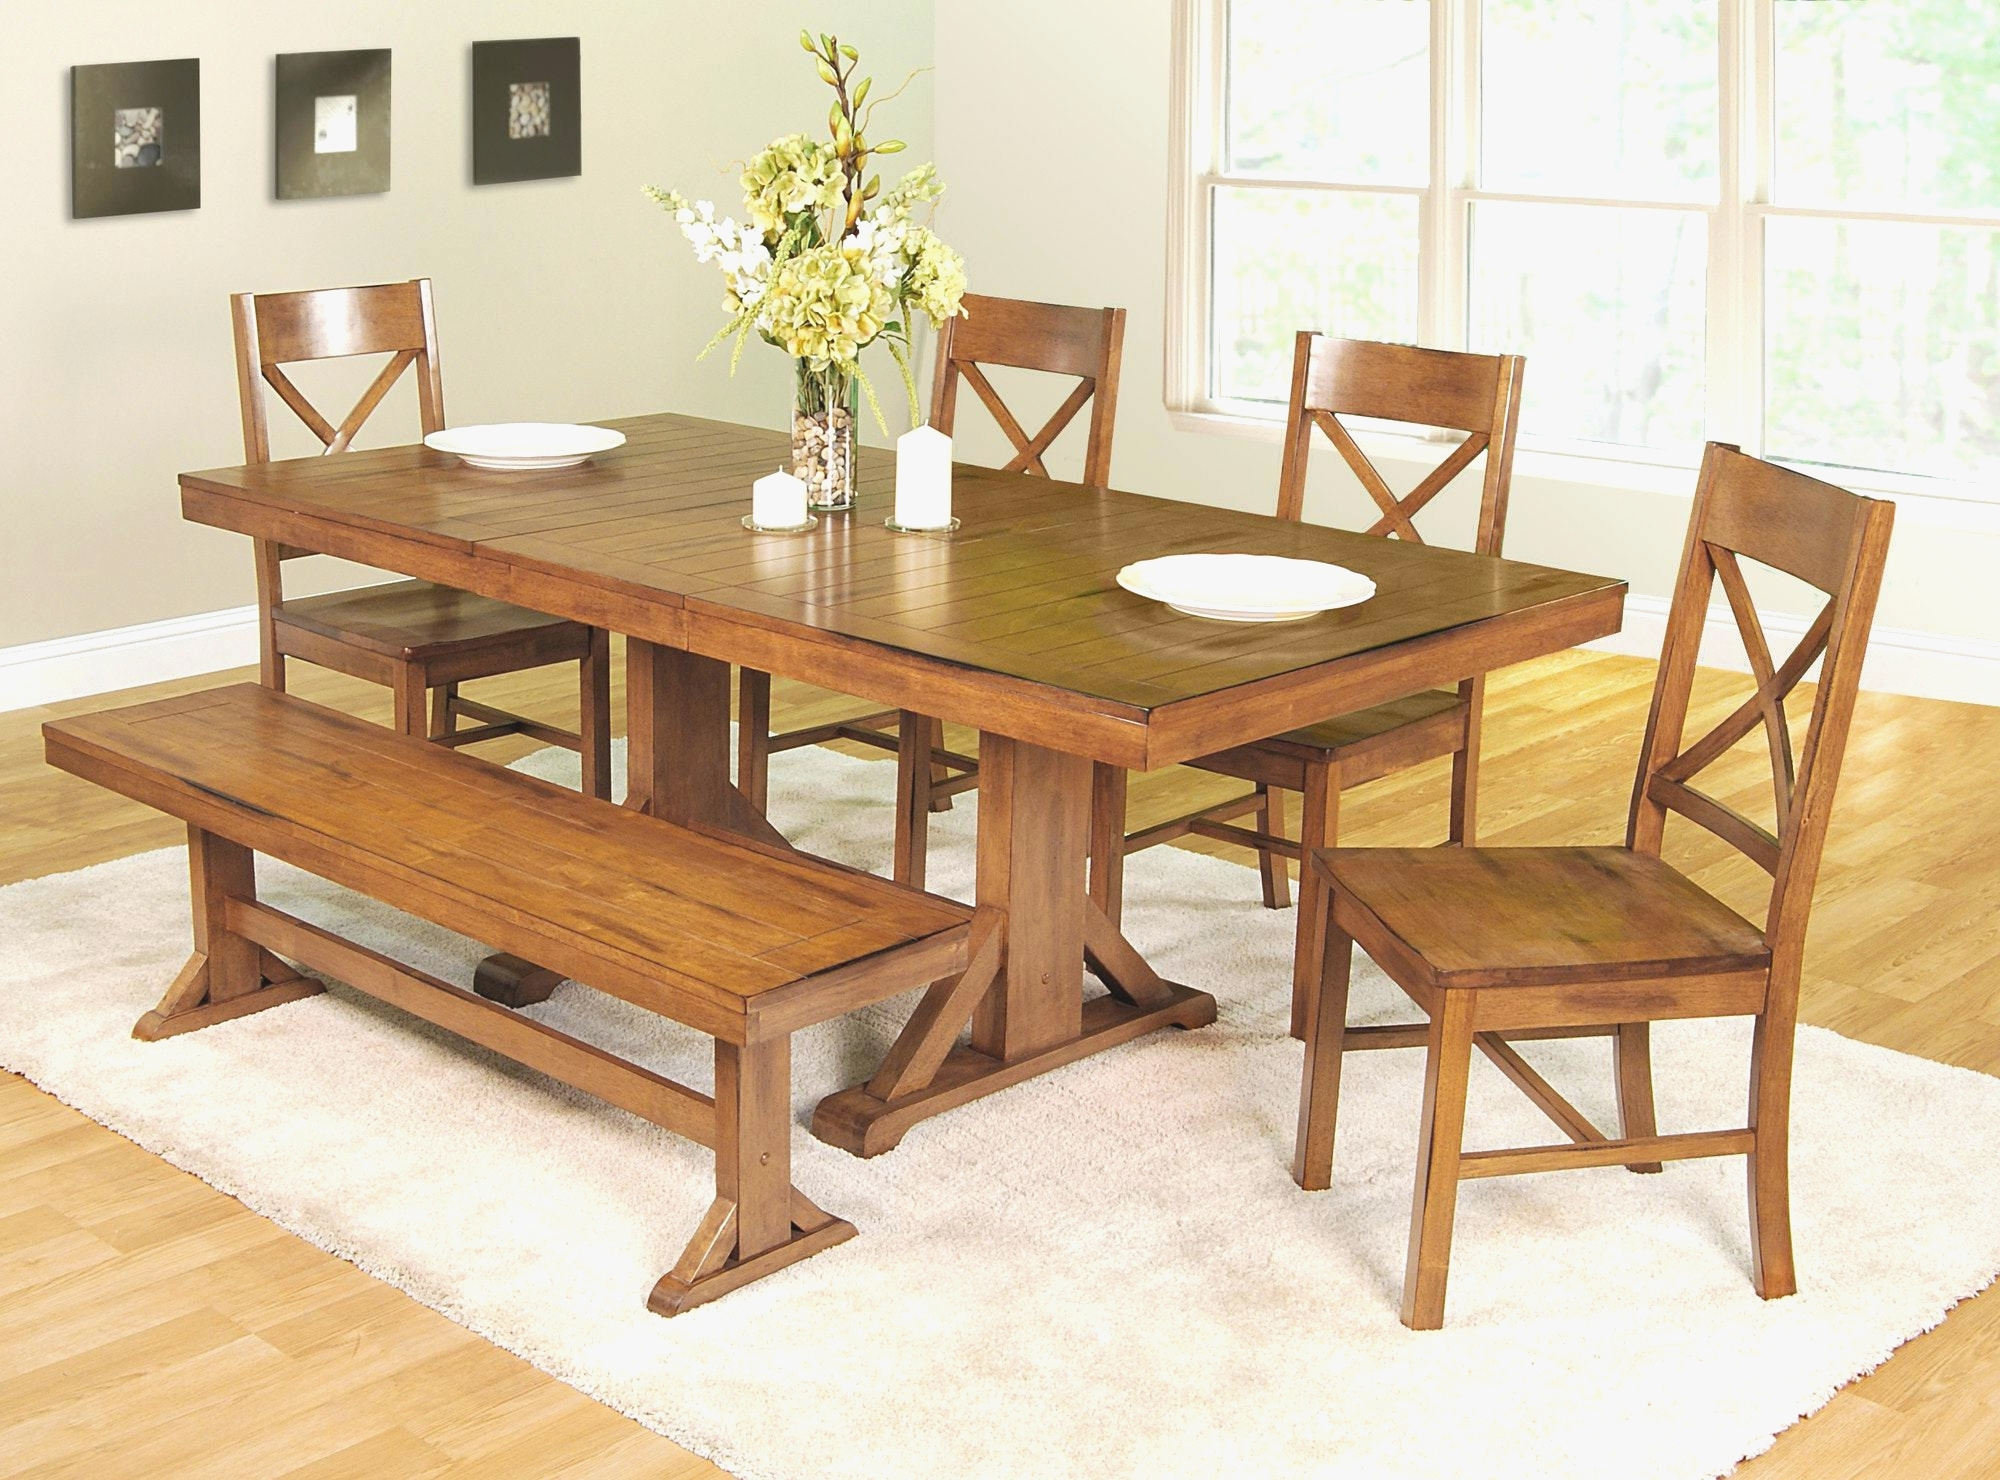 2017 Kitchen Table Bench With Back Elegant Bench Impressive Kitchen Table Throughout Bench With Back For Dining Tables (View 25 of 25)